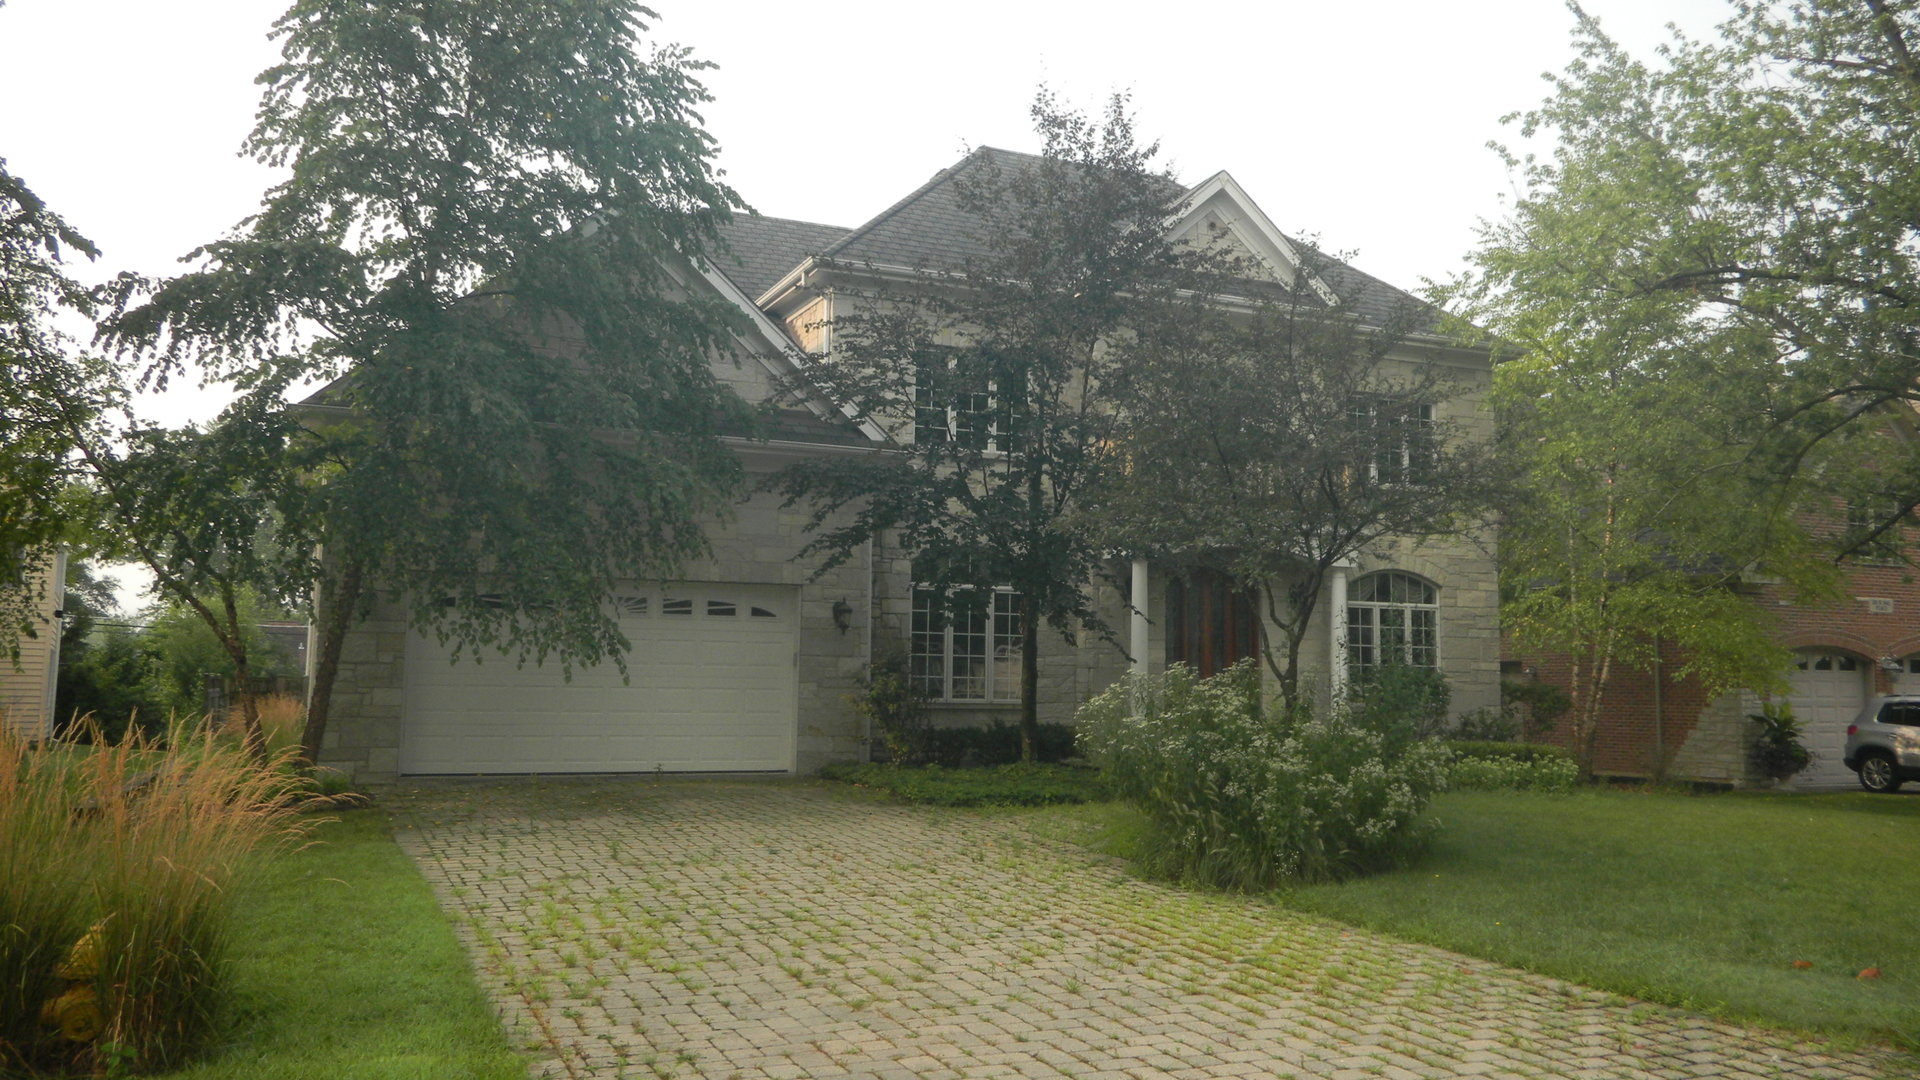 522 West 58th Place, Hinsdale, Illinois 60521